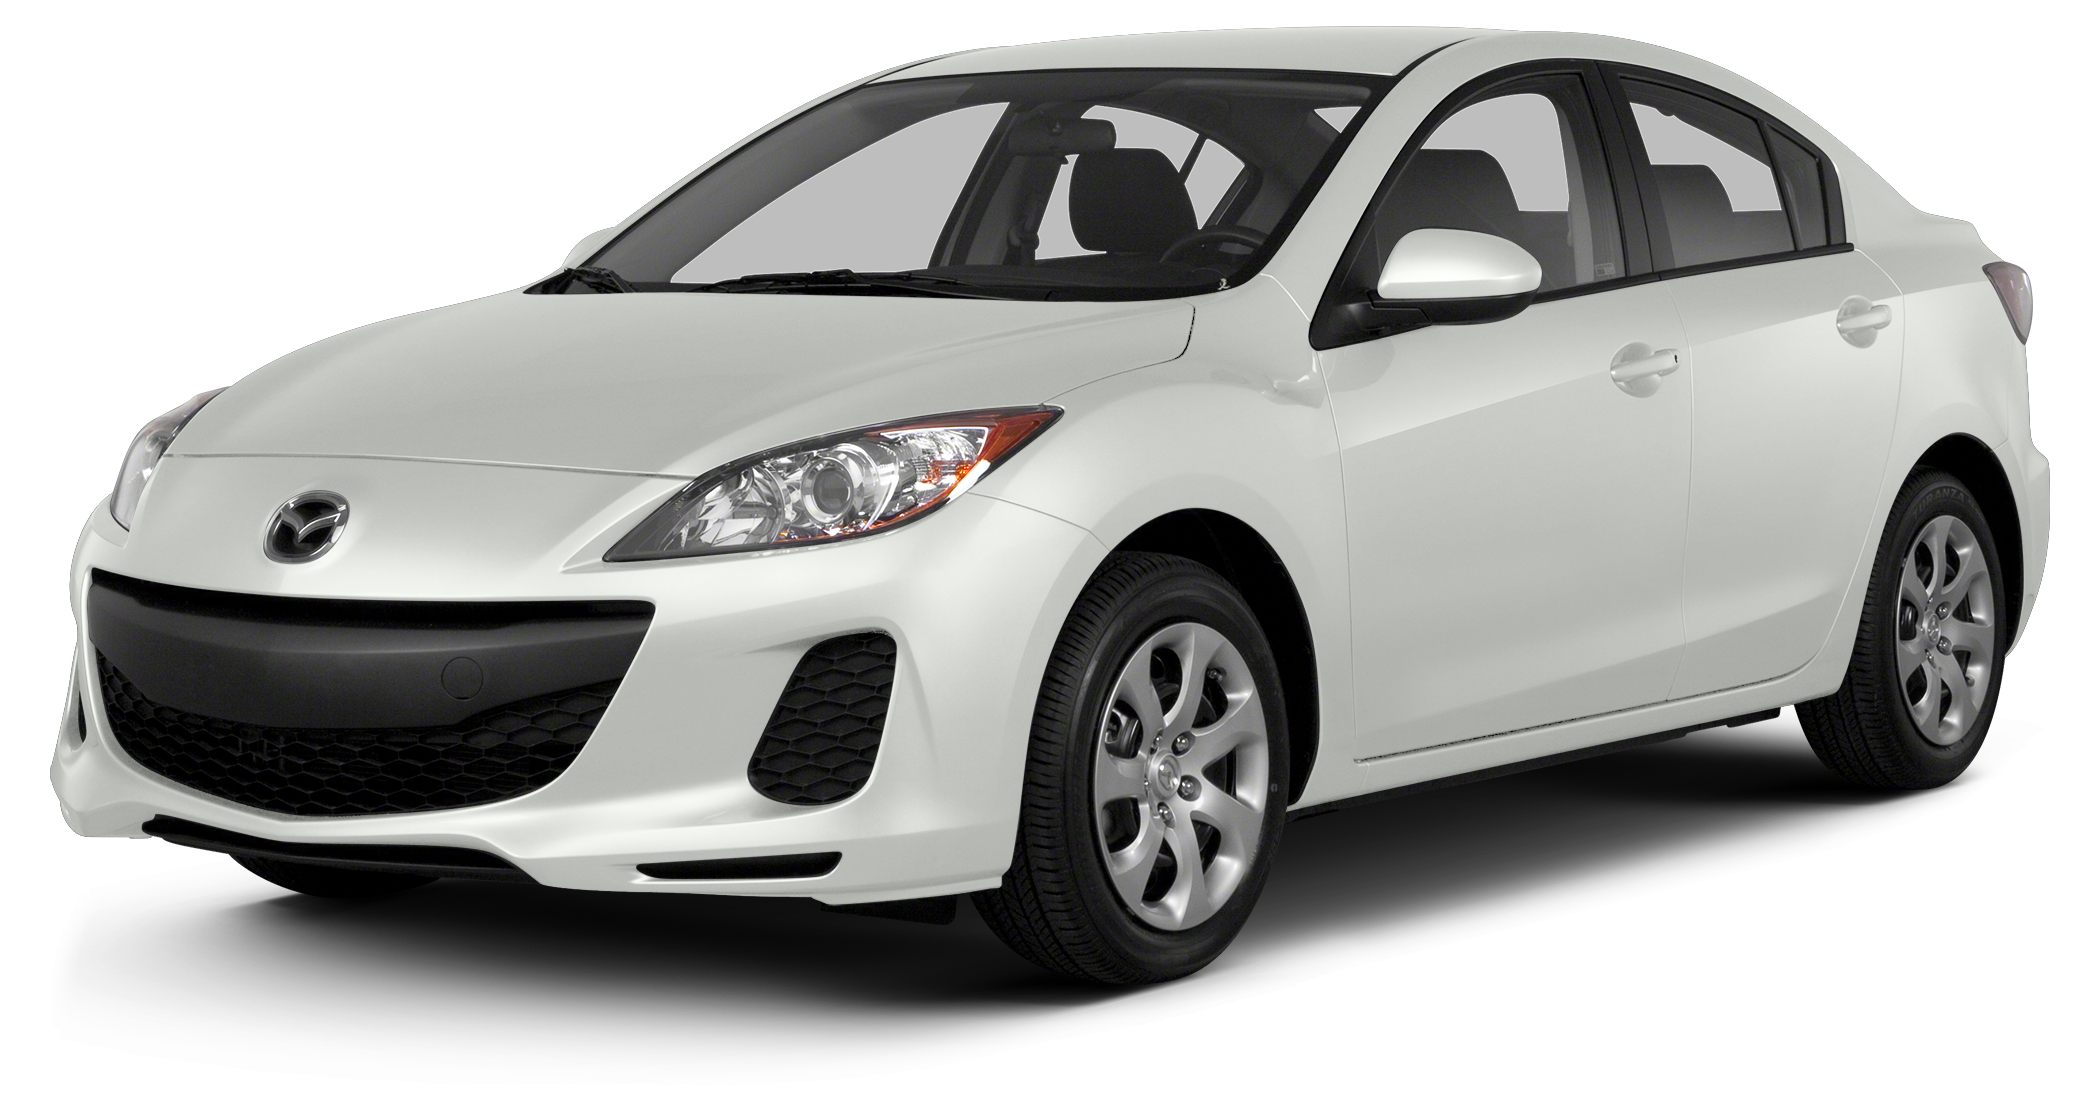 2013 Mazda MAZDA3 i SV  COME SEE THE DIFFERENCE AT TAJ AUTO MALL WE SELL OUR VEHICLES AT